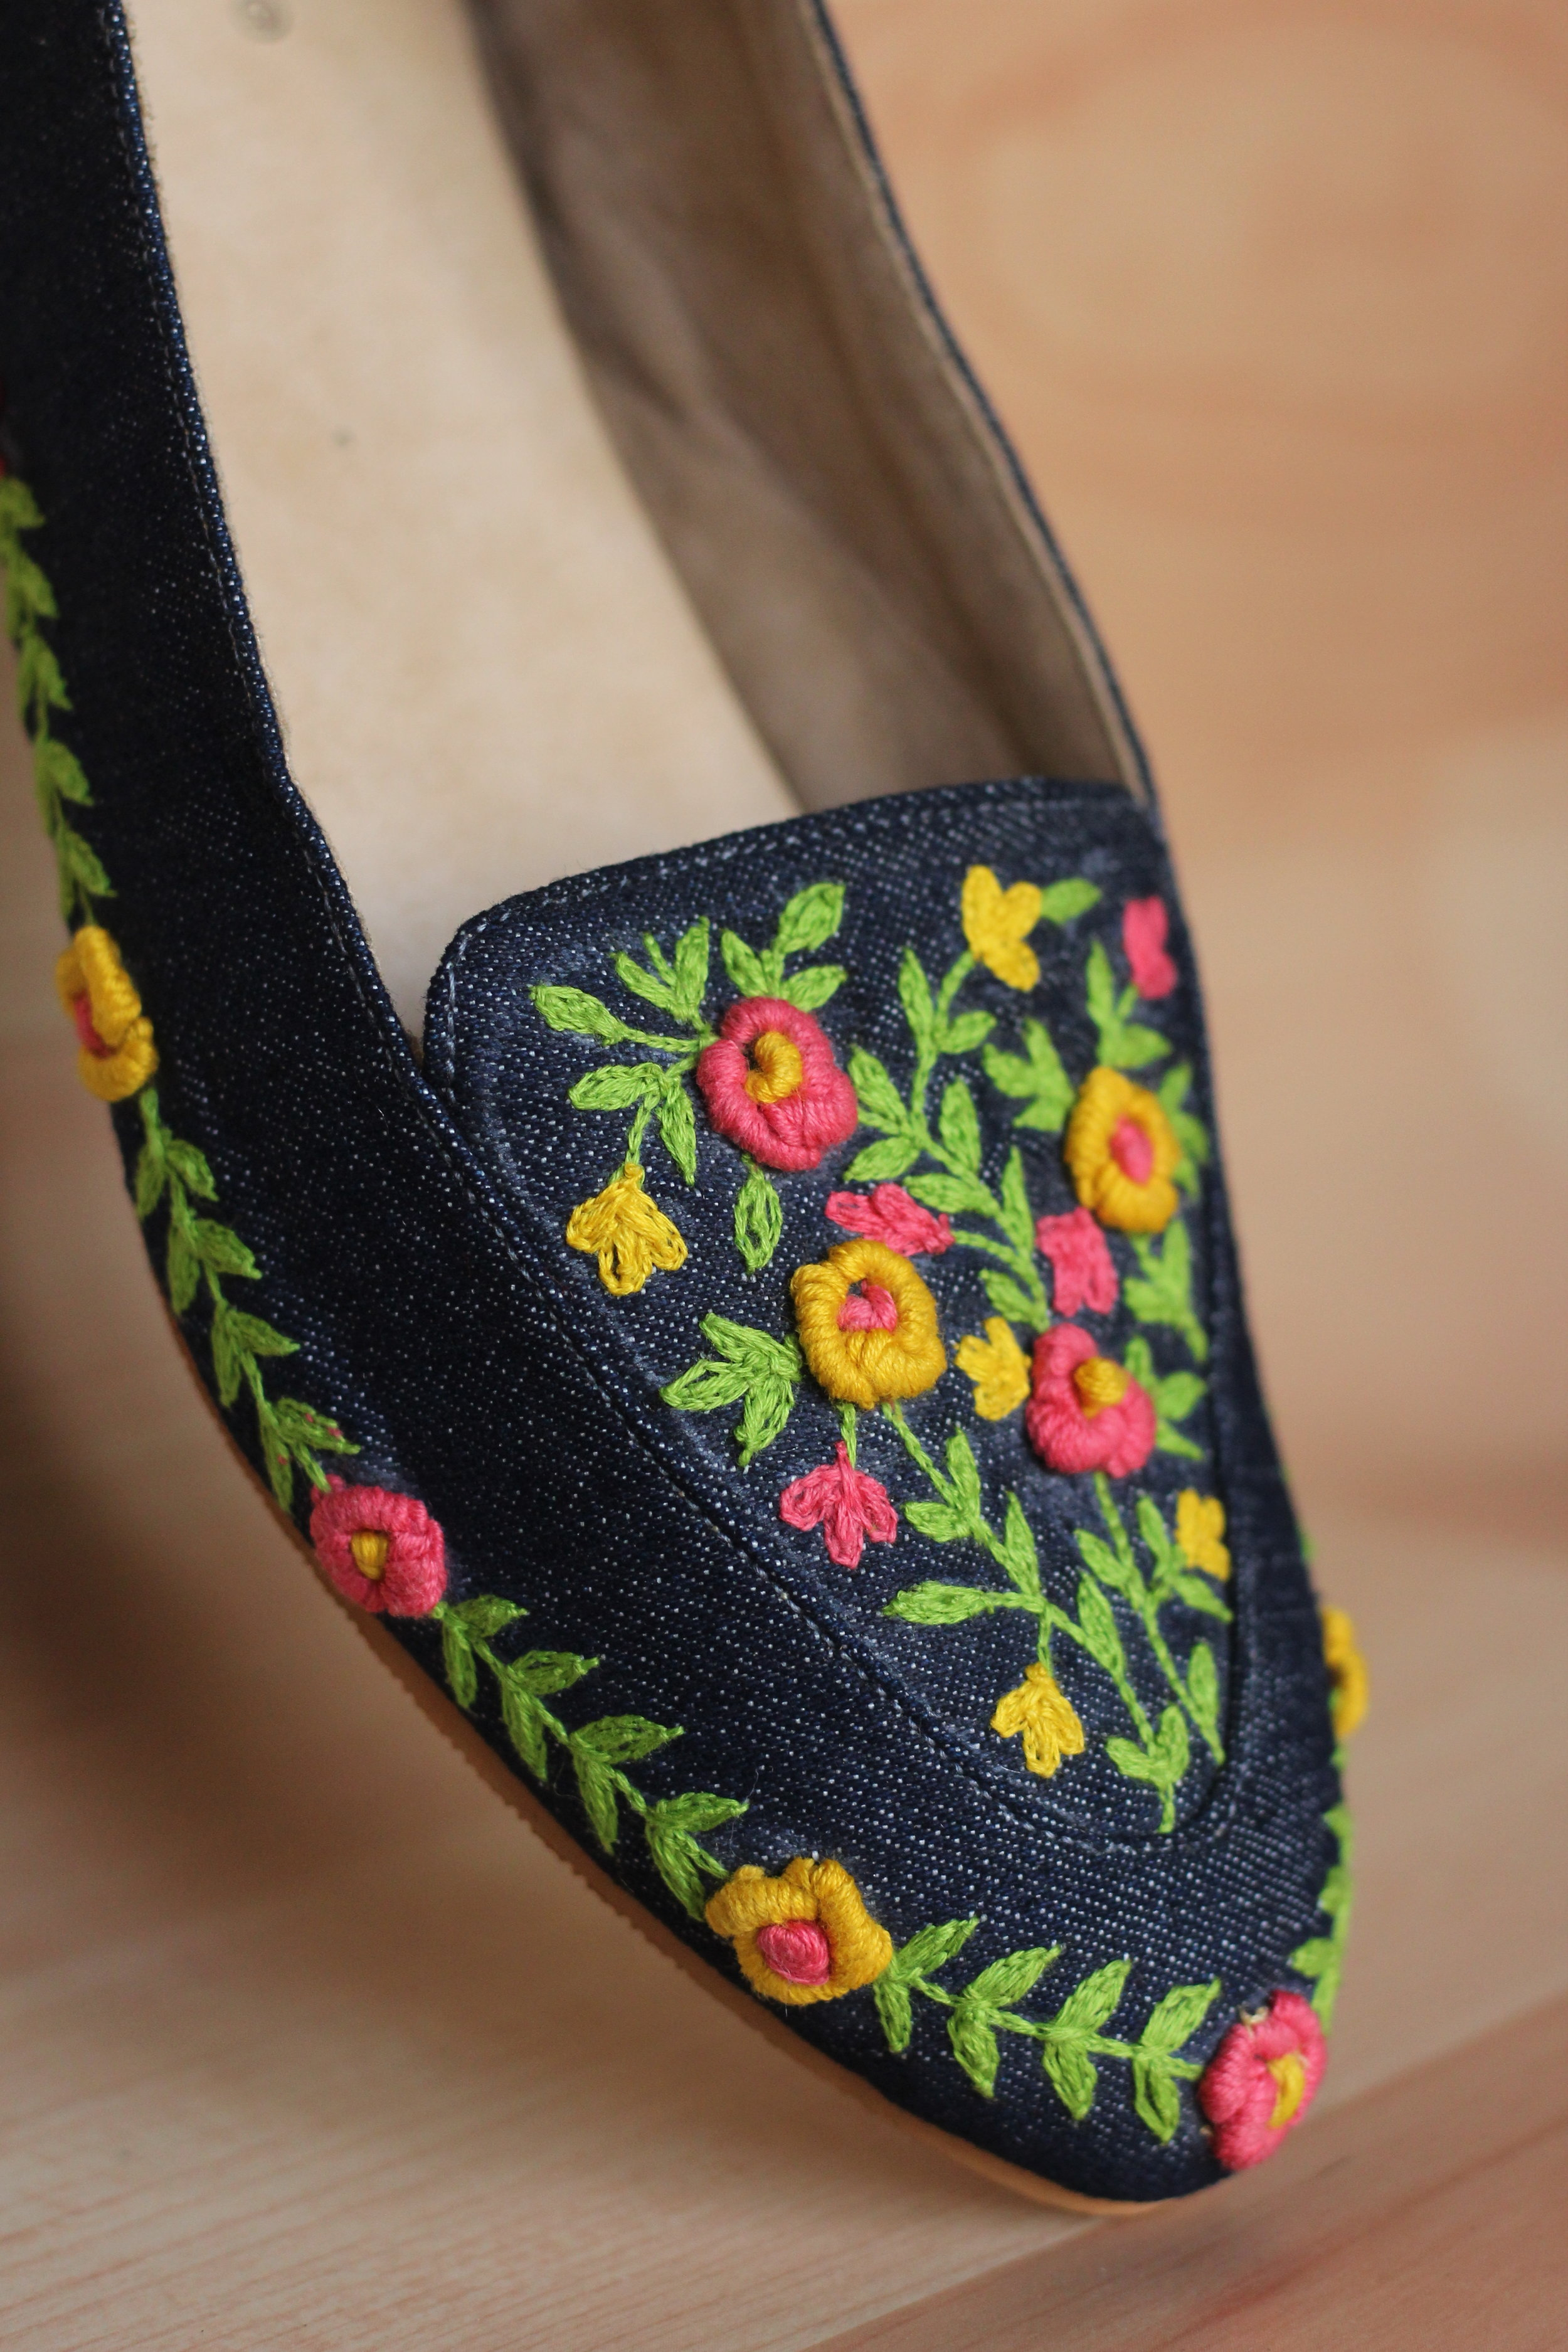 SUMMER GARDEN - Bright and cheerful like walking in a garden on a summer evening, these ballerinas will surely make your casual evening dates memorable.